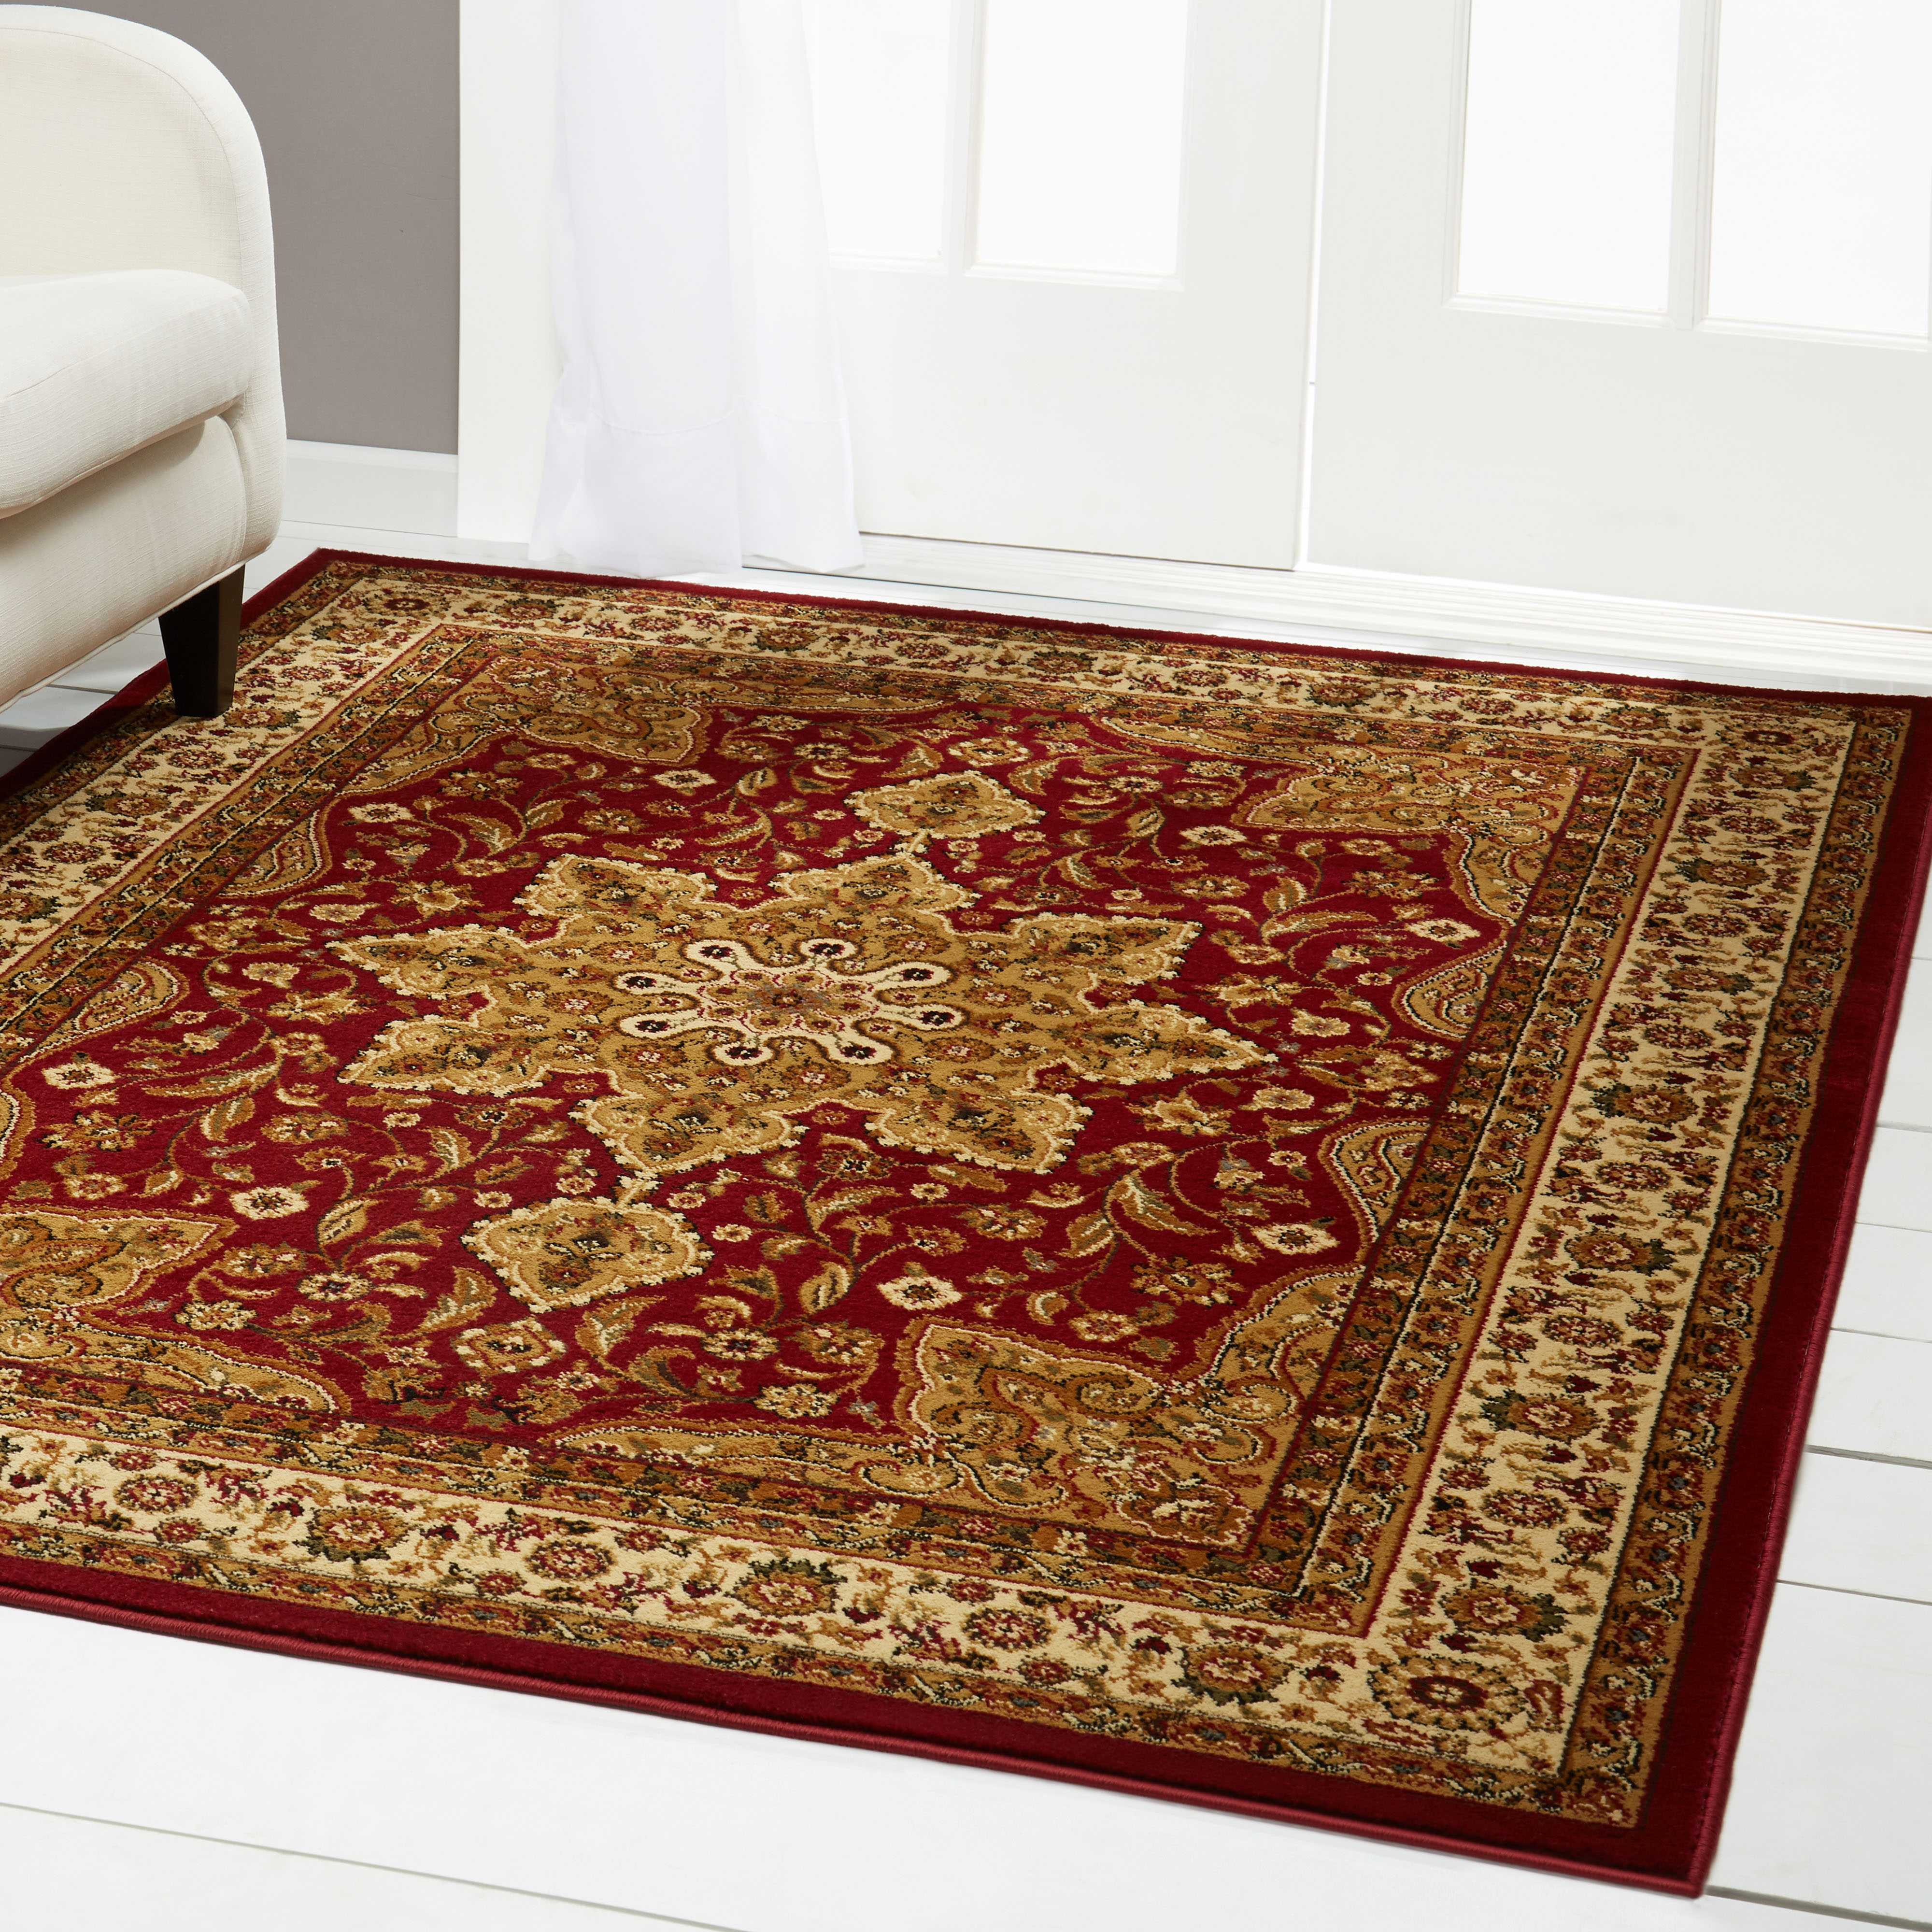 Click here to buy Home Dynamix Royalty Collection 8083-100 Area Rug by Home Dynamix.